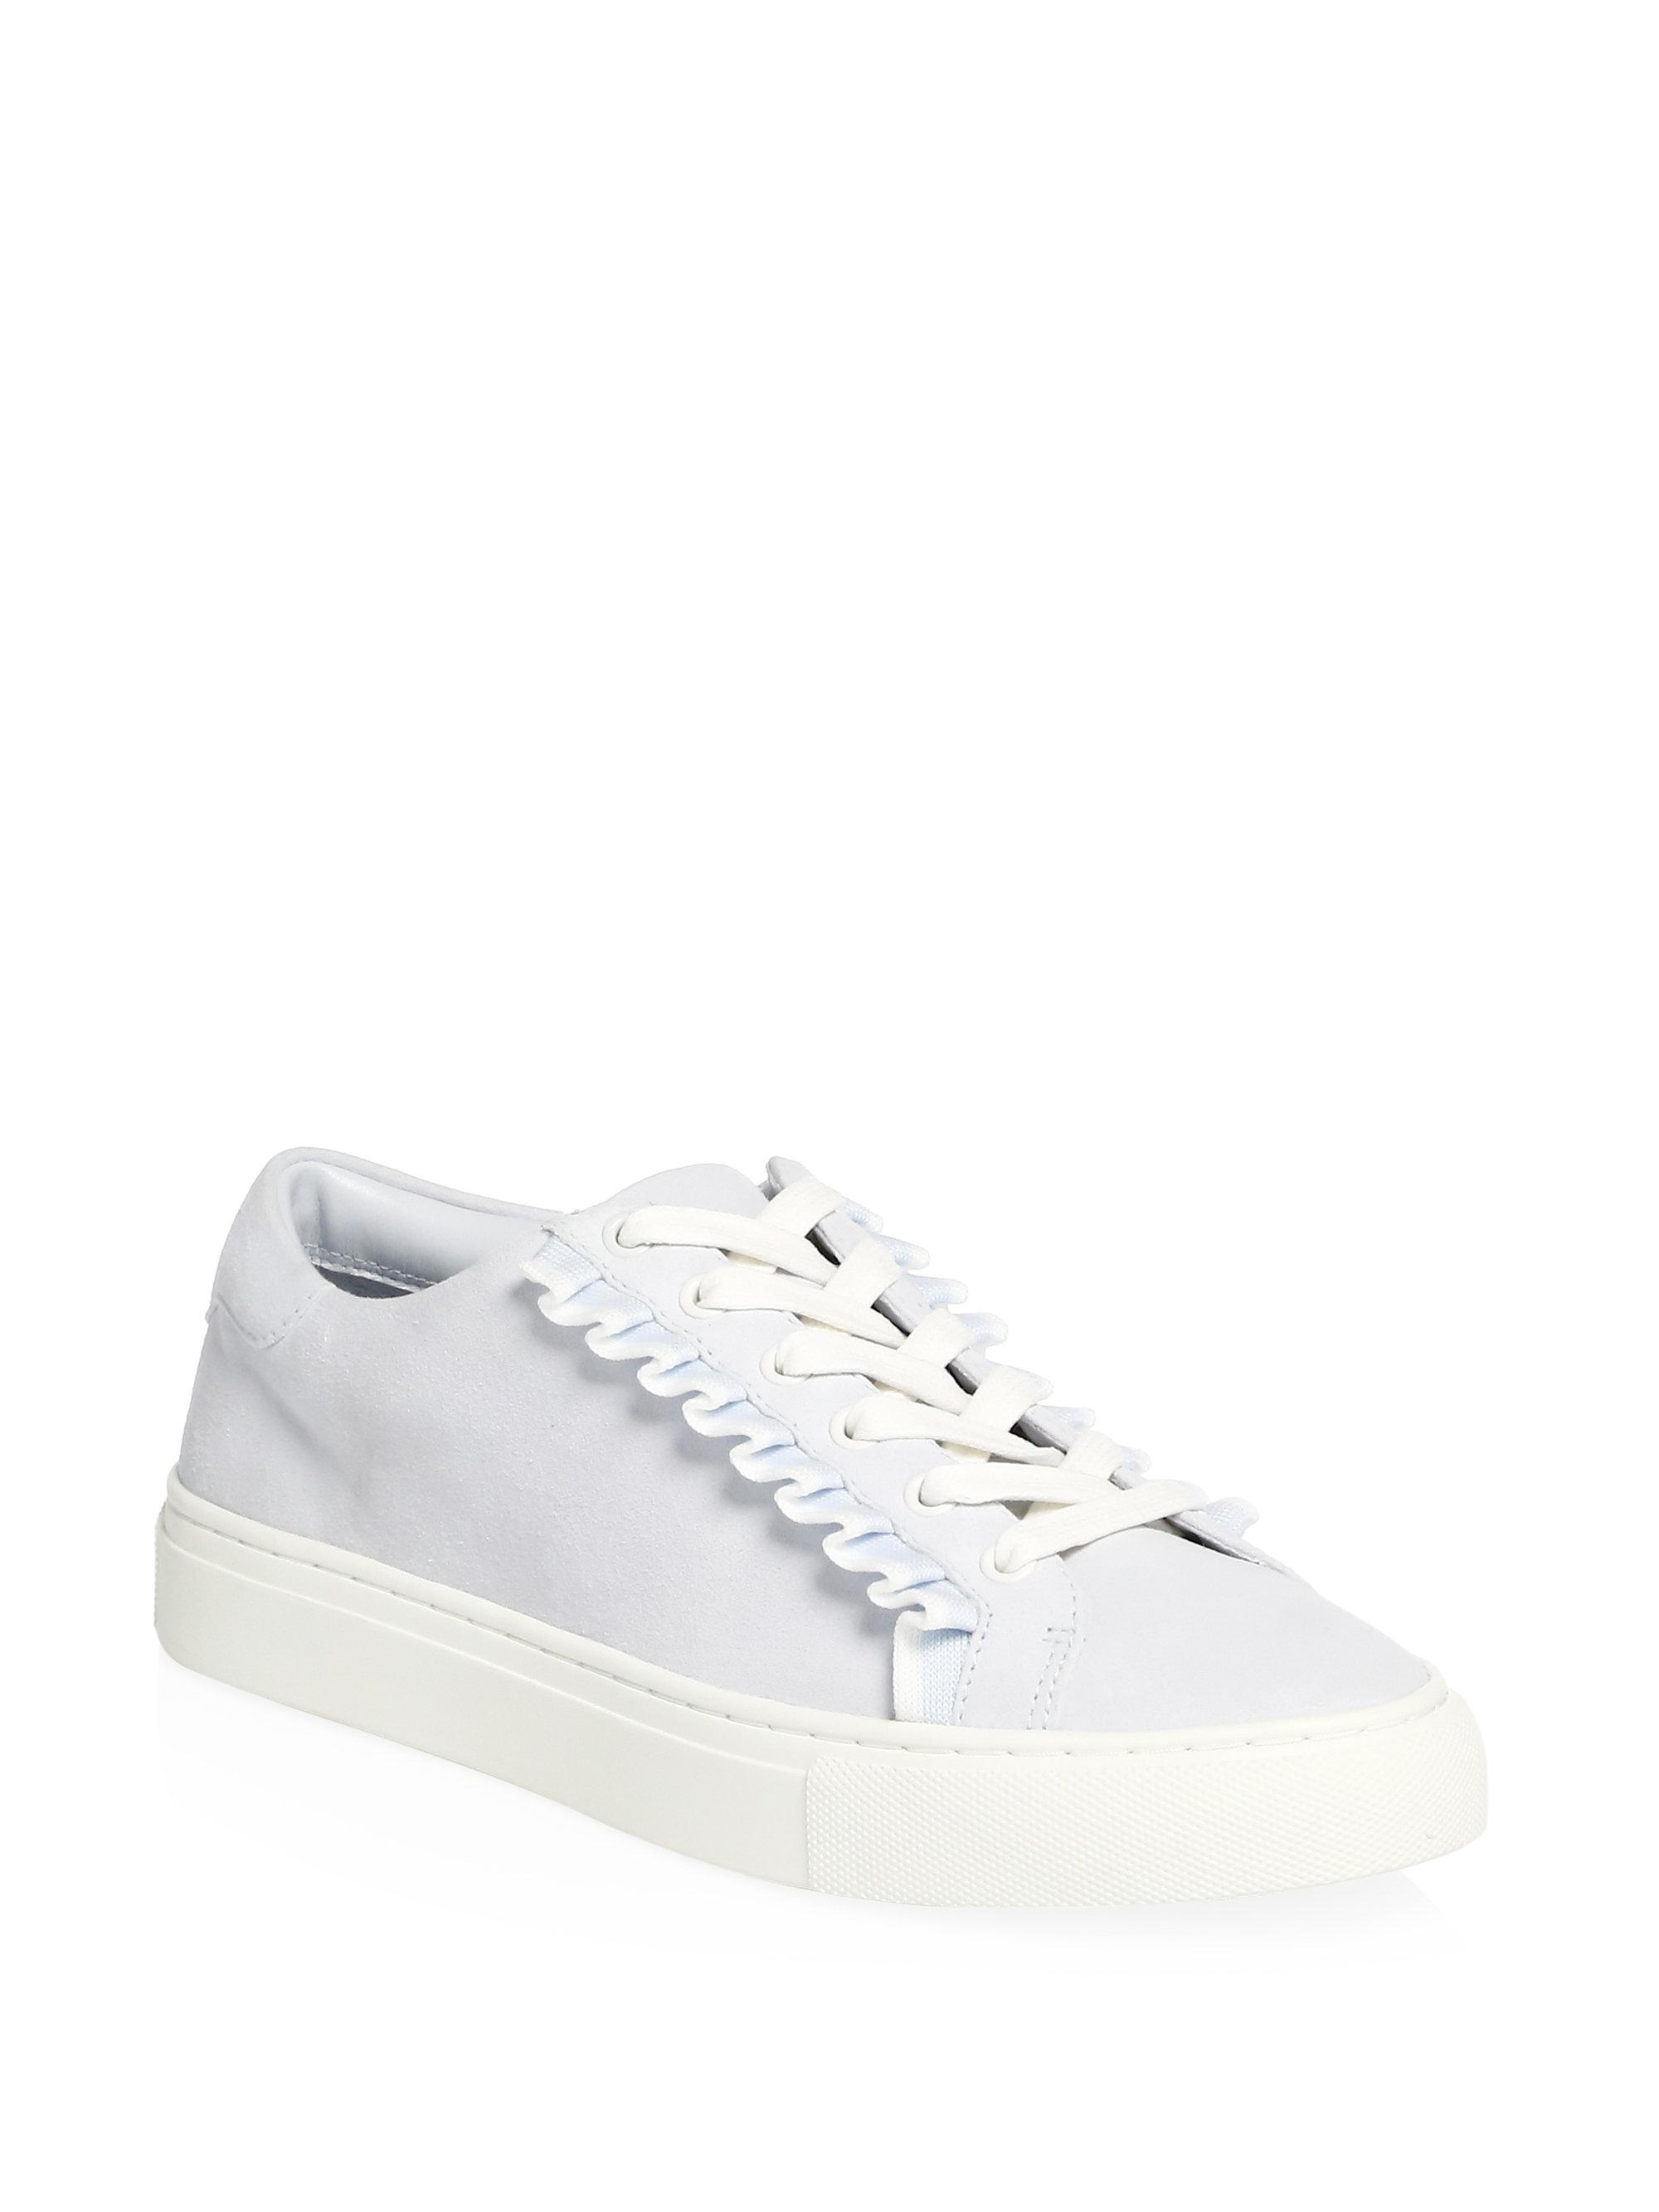 wholesale price for sale Tory Burch Ruffle Low-Top Sneakers free shipping enjoy cheap authentic brand new unisex for sale miRBblH